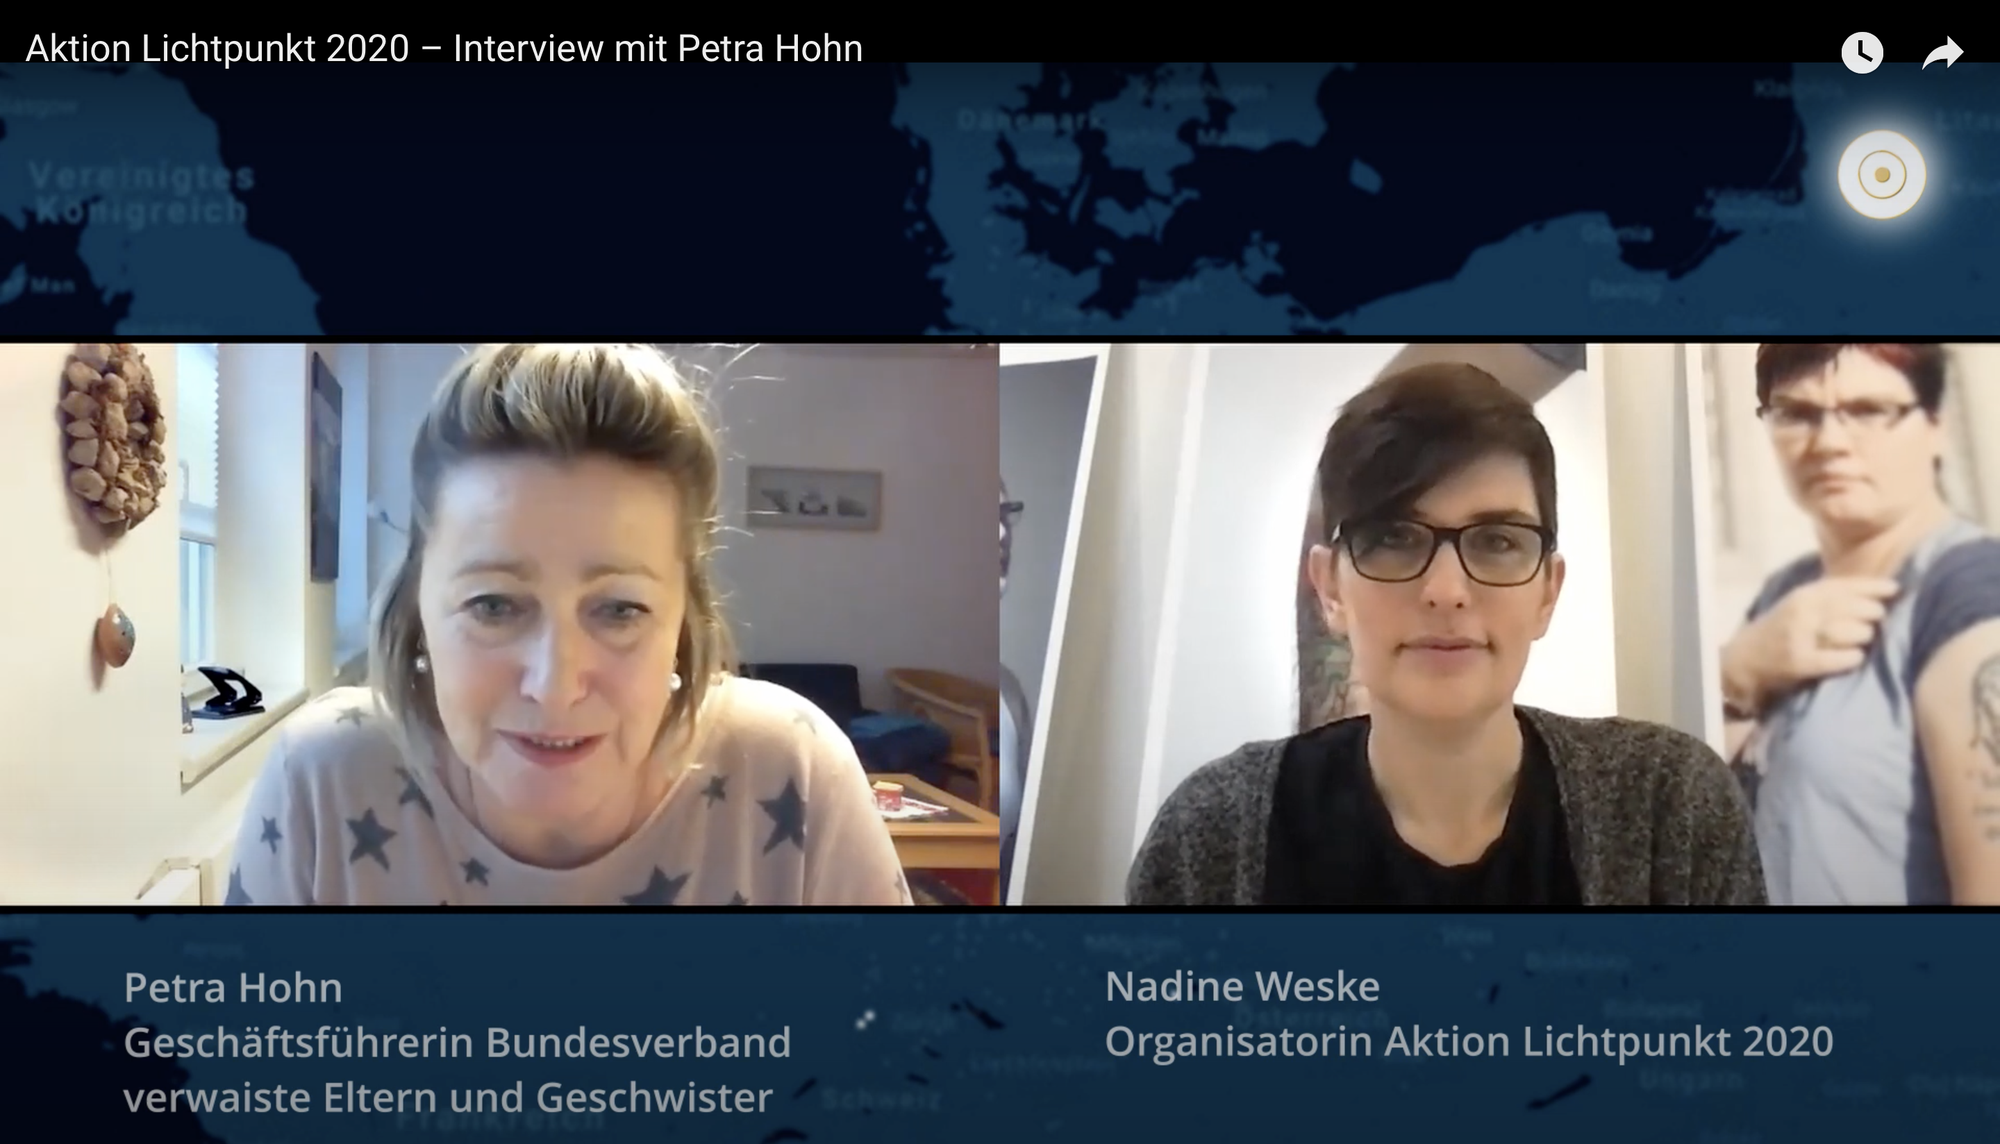 Interview mit Petra Hohn